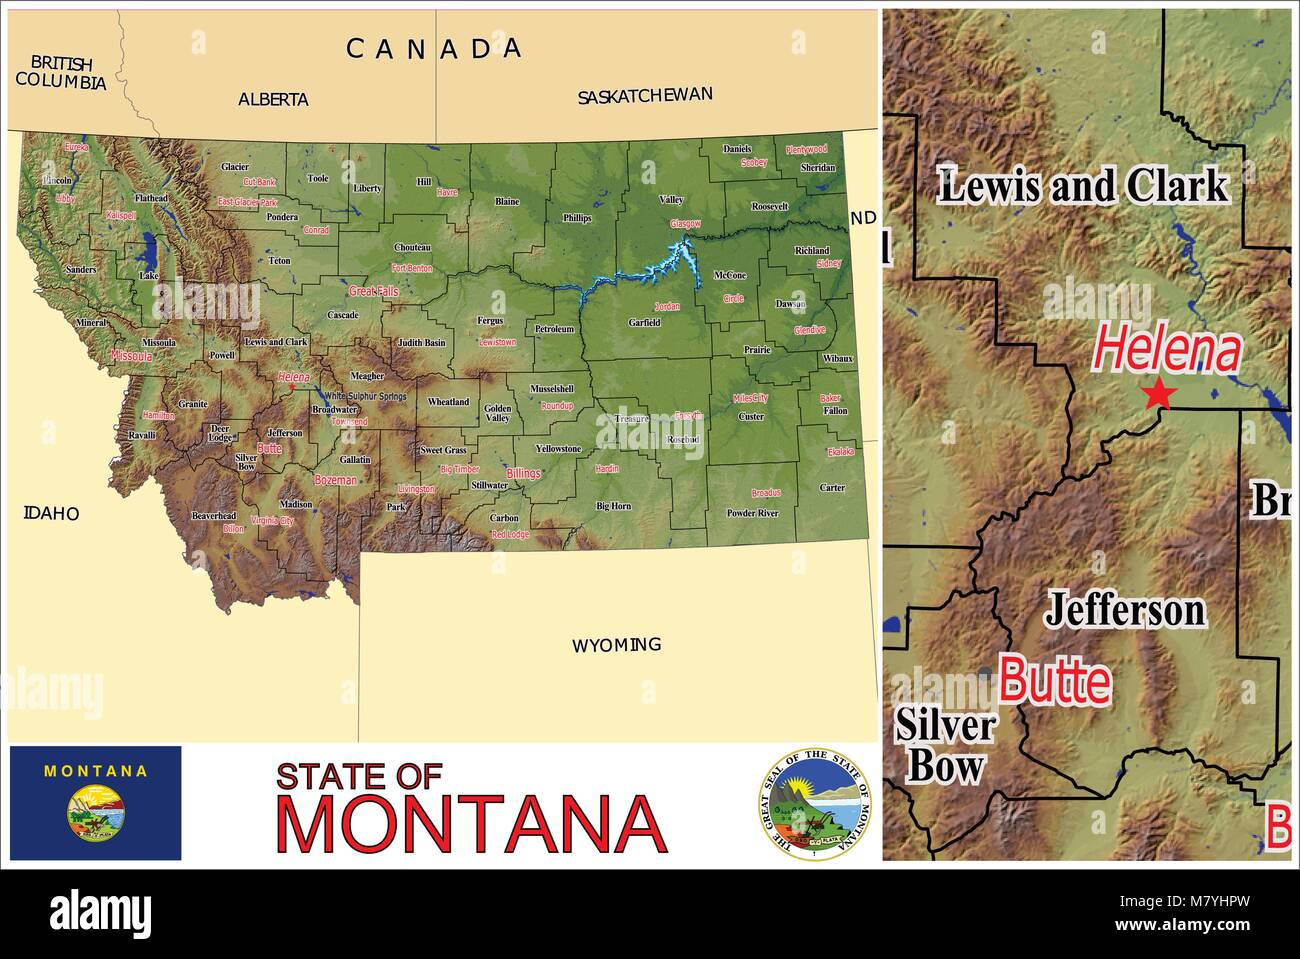 Montana State Map With Counties.Montana State Counties Administrative Divisions Stock Vector Art